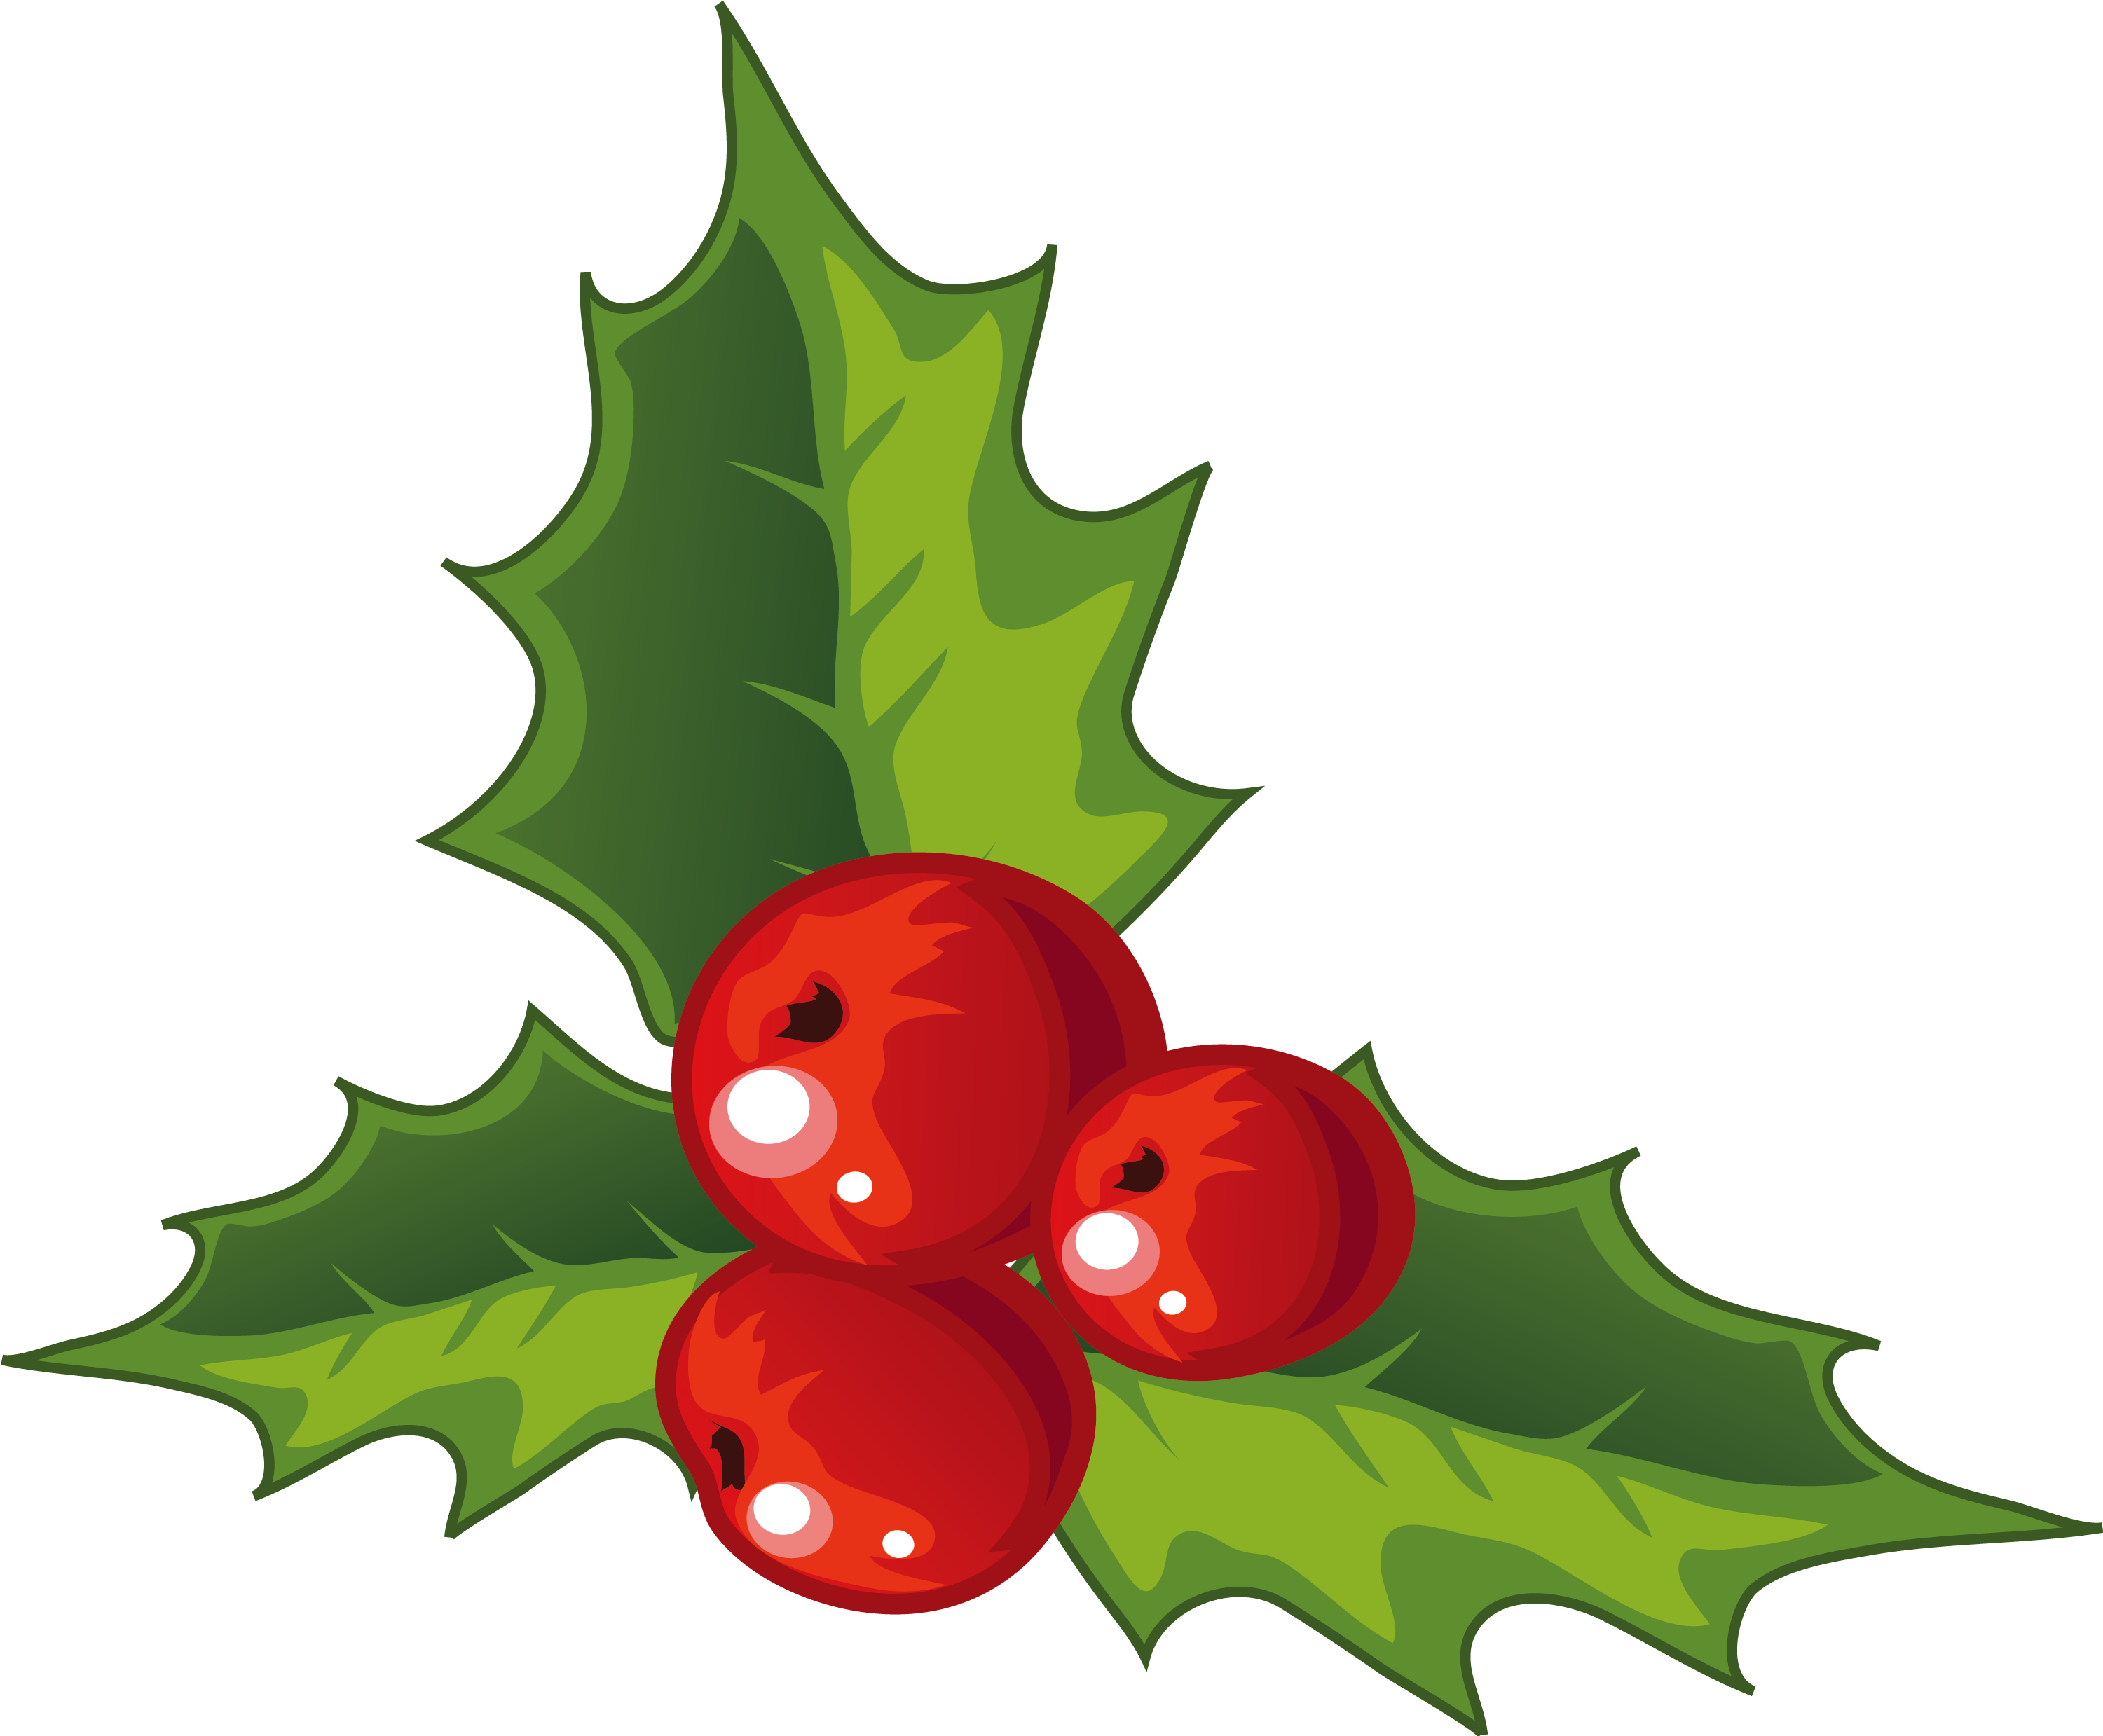 Transparent holly decoration. Christmas decorations for